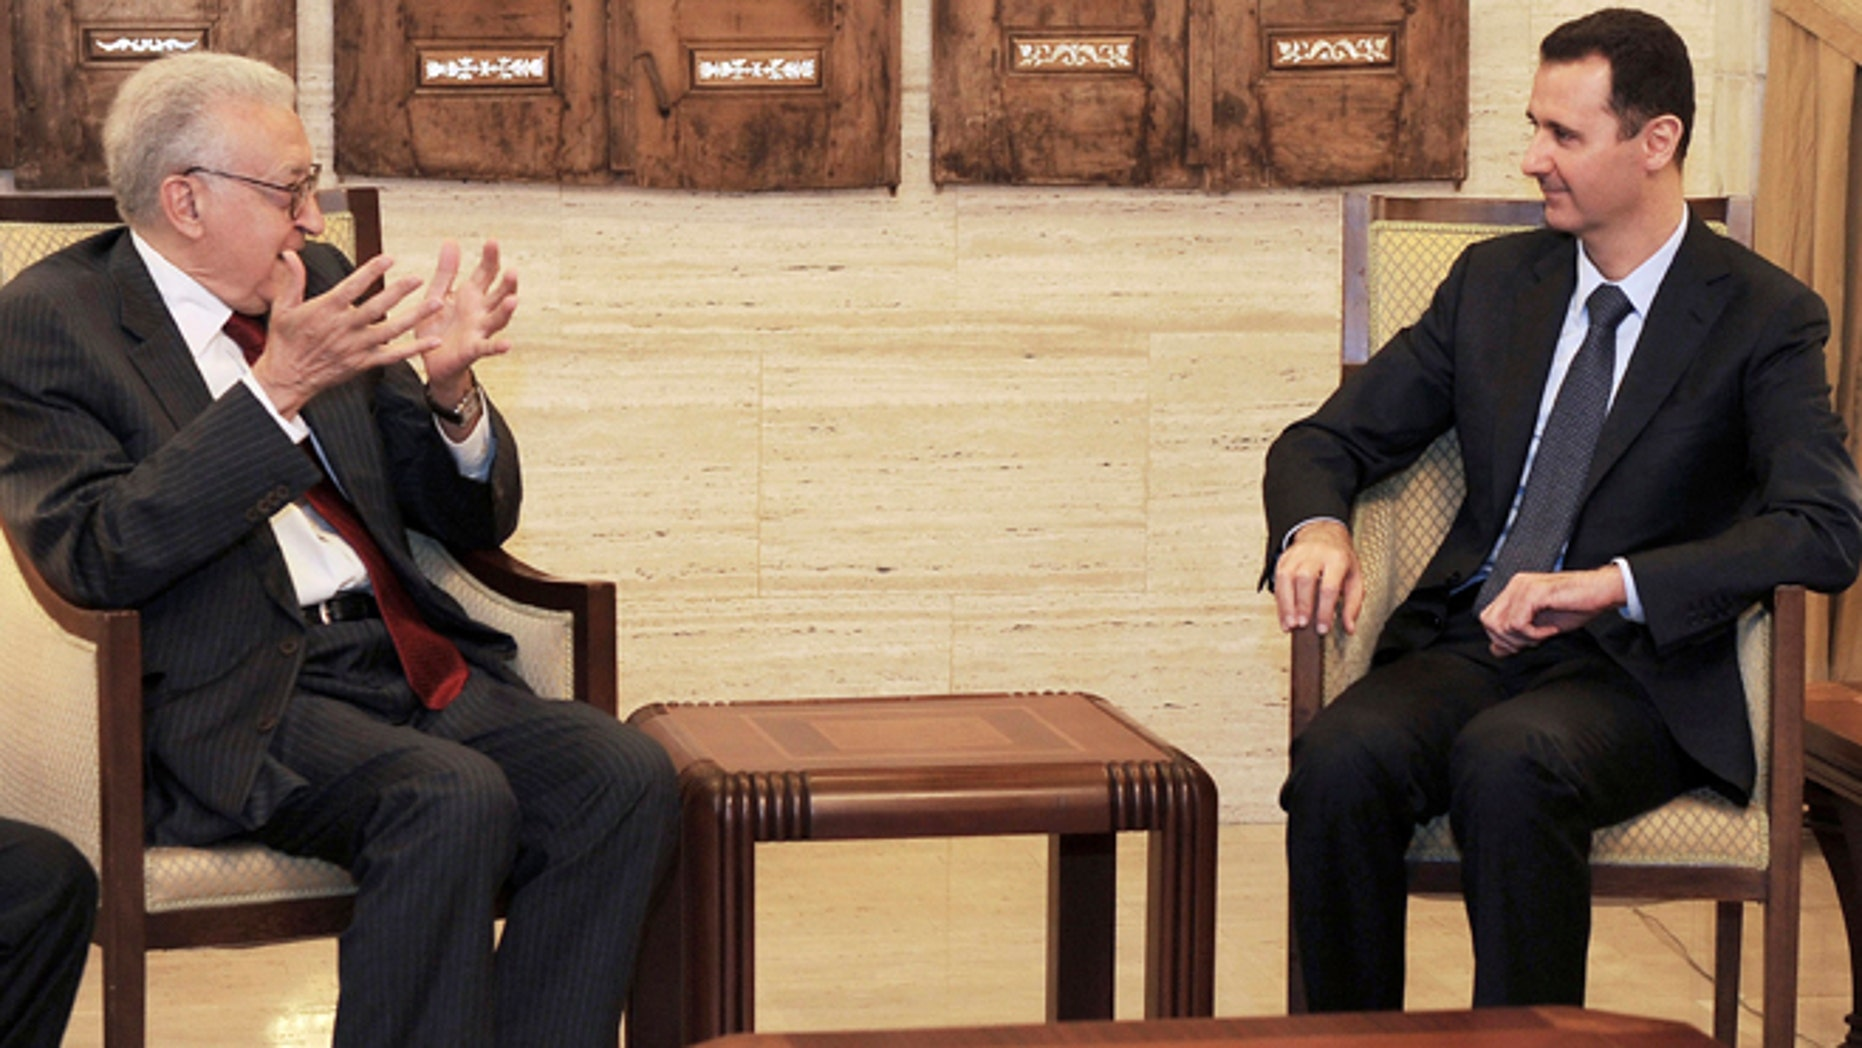 Sept. 15, 2012: In this photo released by the Syrian official news agency SANA, Syrian President Bashar Assad, right, meets with the U.N.-Arab League envoy Lakhdar Brahimi, left, in Damascus, Syria.